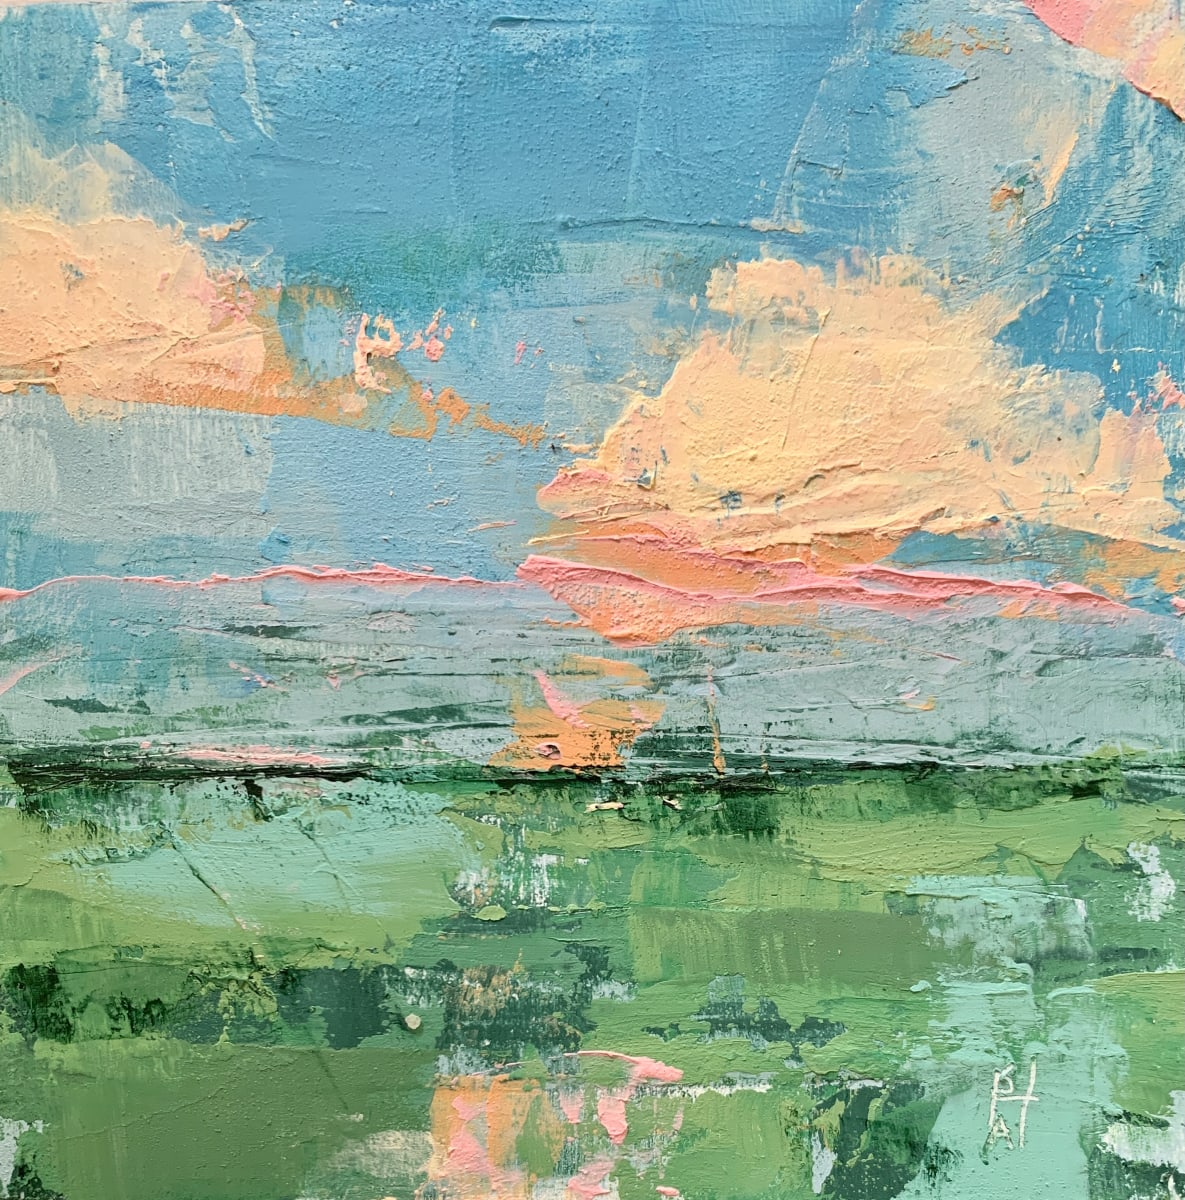 Little Landscapes #7 by Sally Hootnick